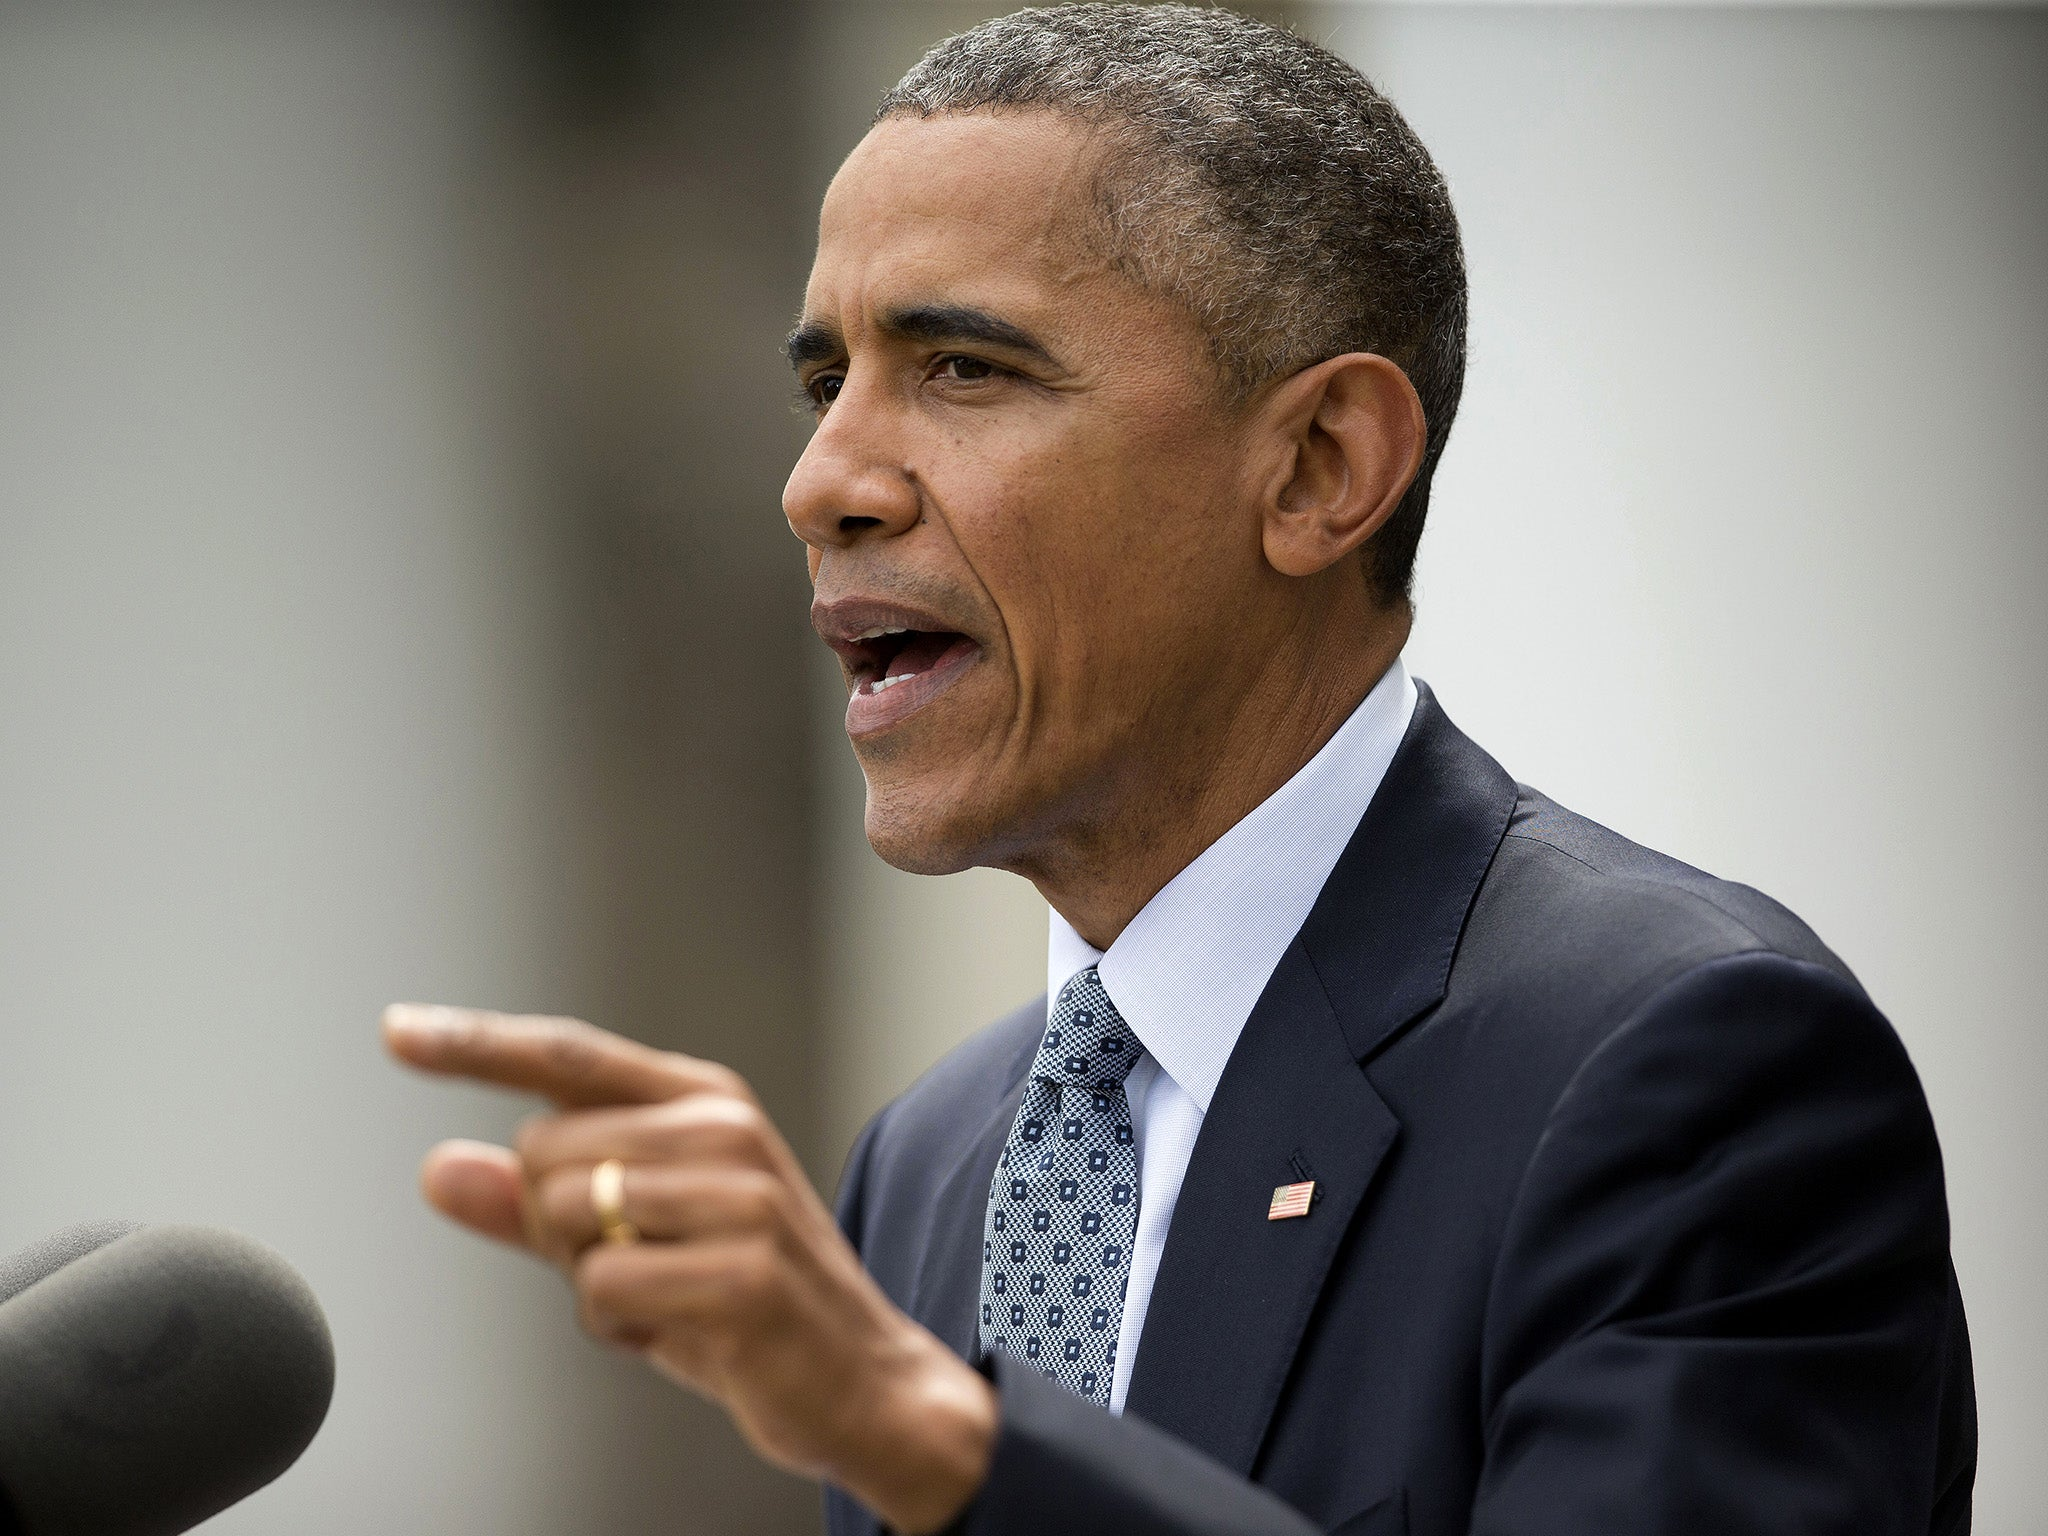 Iran Sex Videos Download Complete iran nuclear deal: full transcript of president obama's remarks